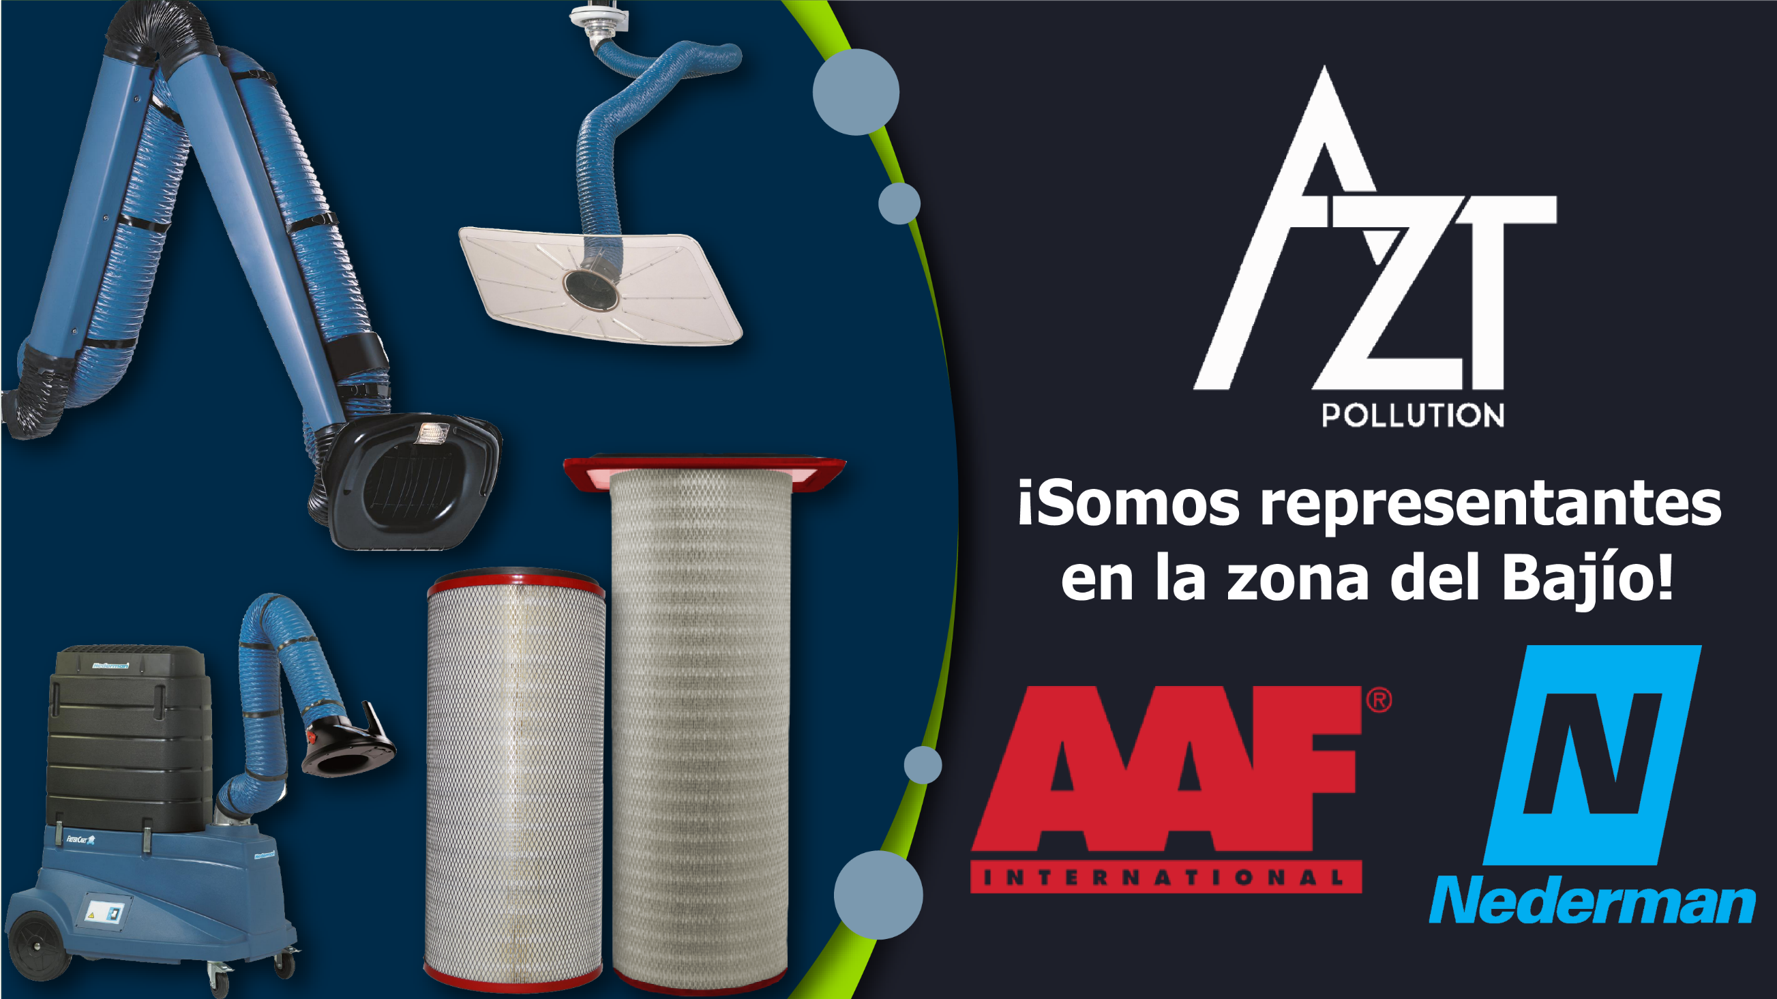 Representantes AAF International y Nederman